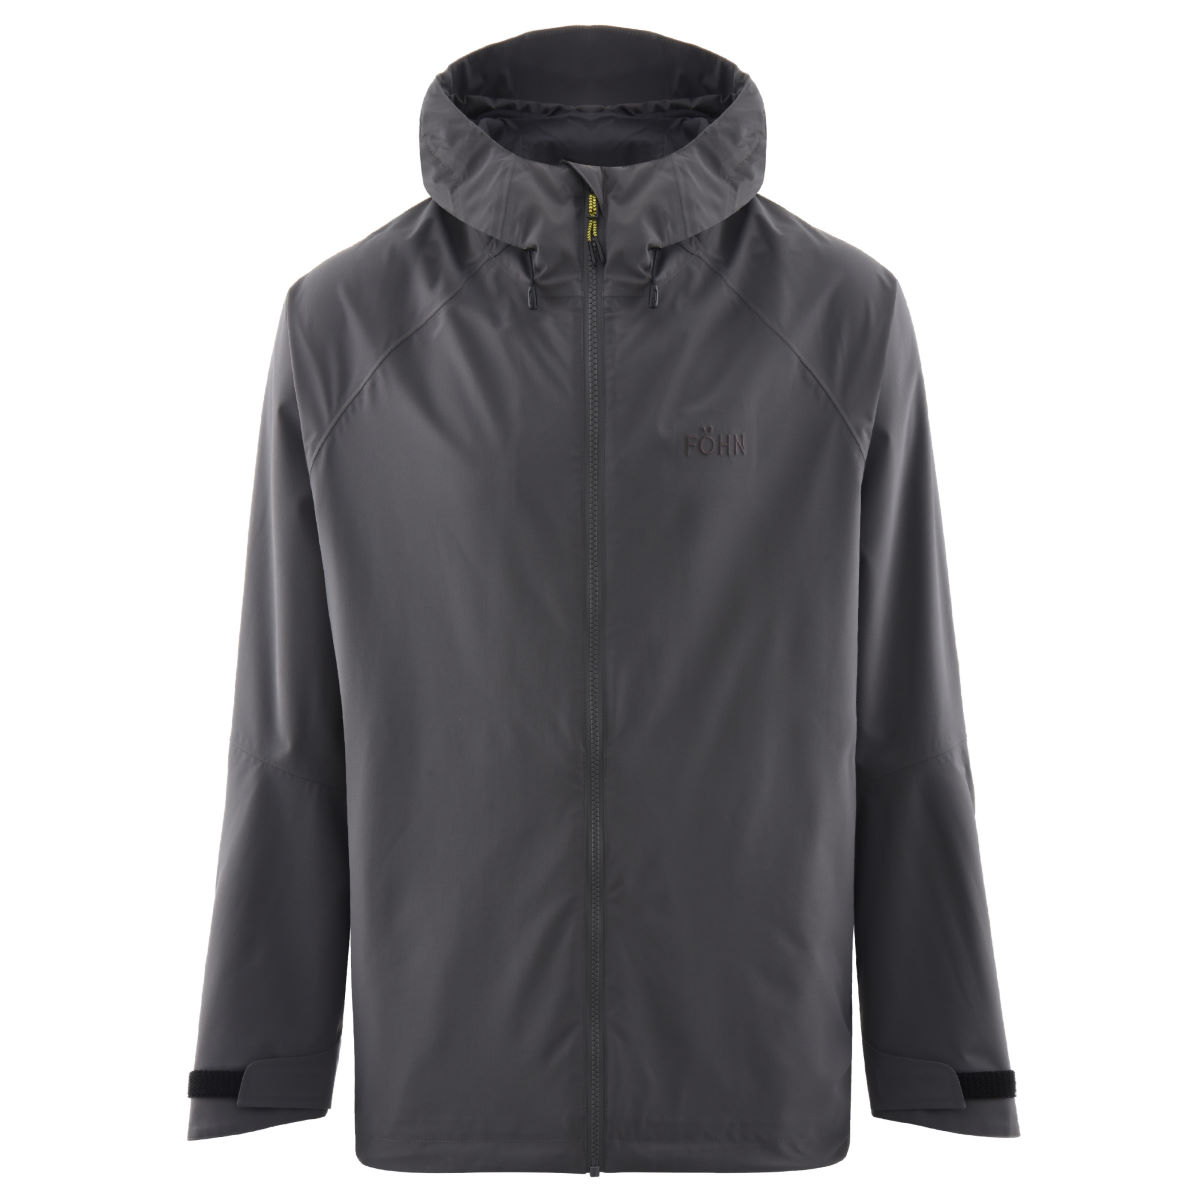 Fohn - Stratus 2L Waterproof Jacket - Medium Gris | Vestes